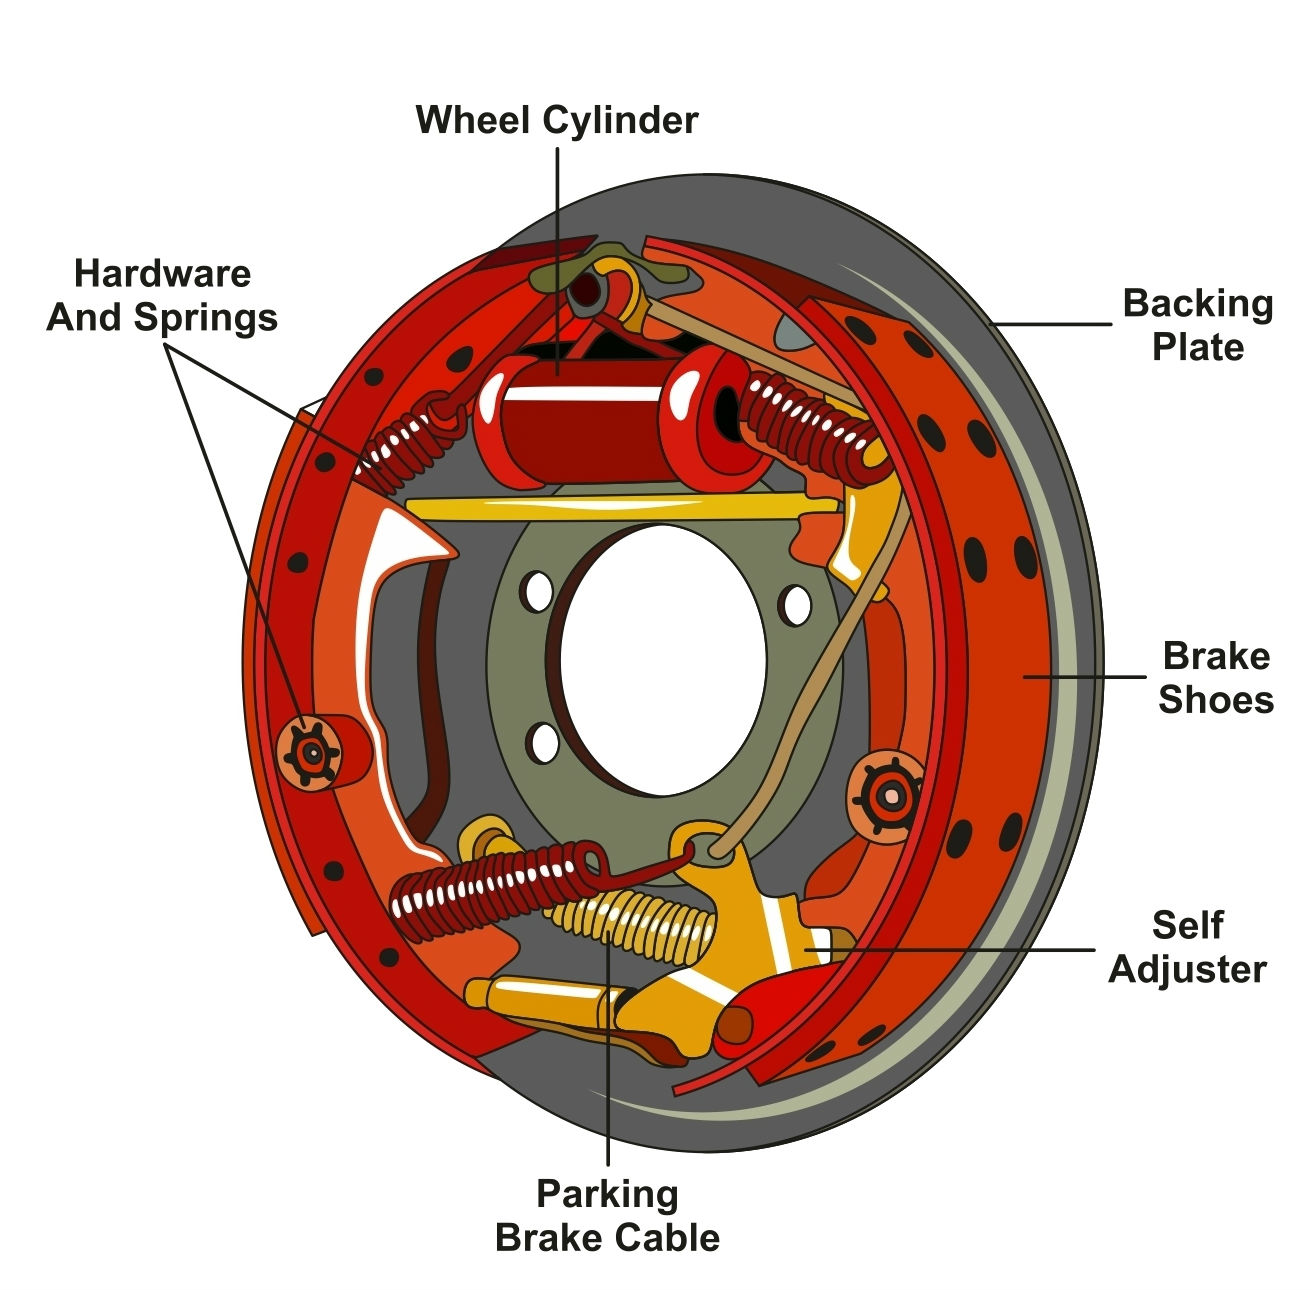 hight resolution of drum brake diagram 1 b peppers automotive groupdiagram of a drum brake